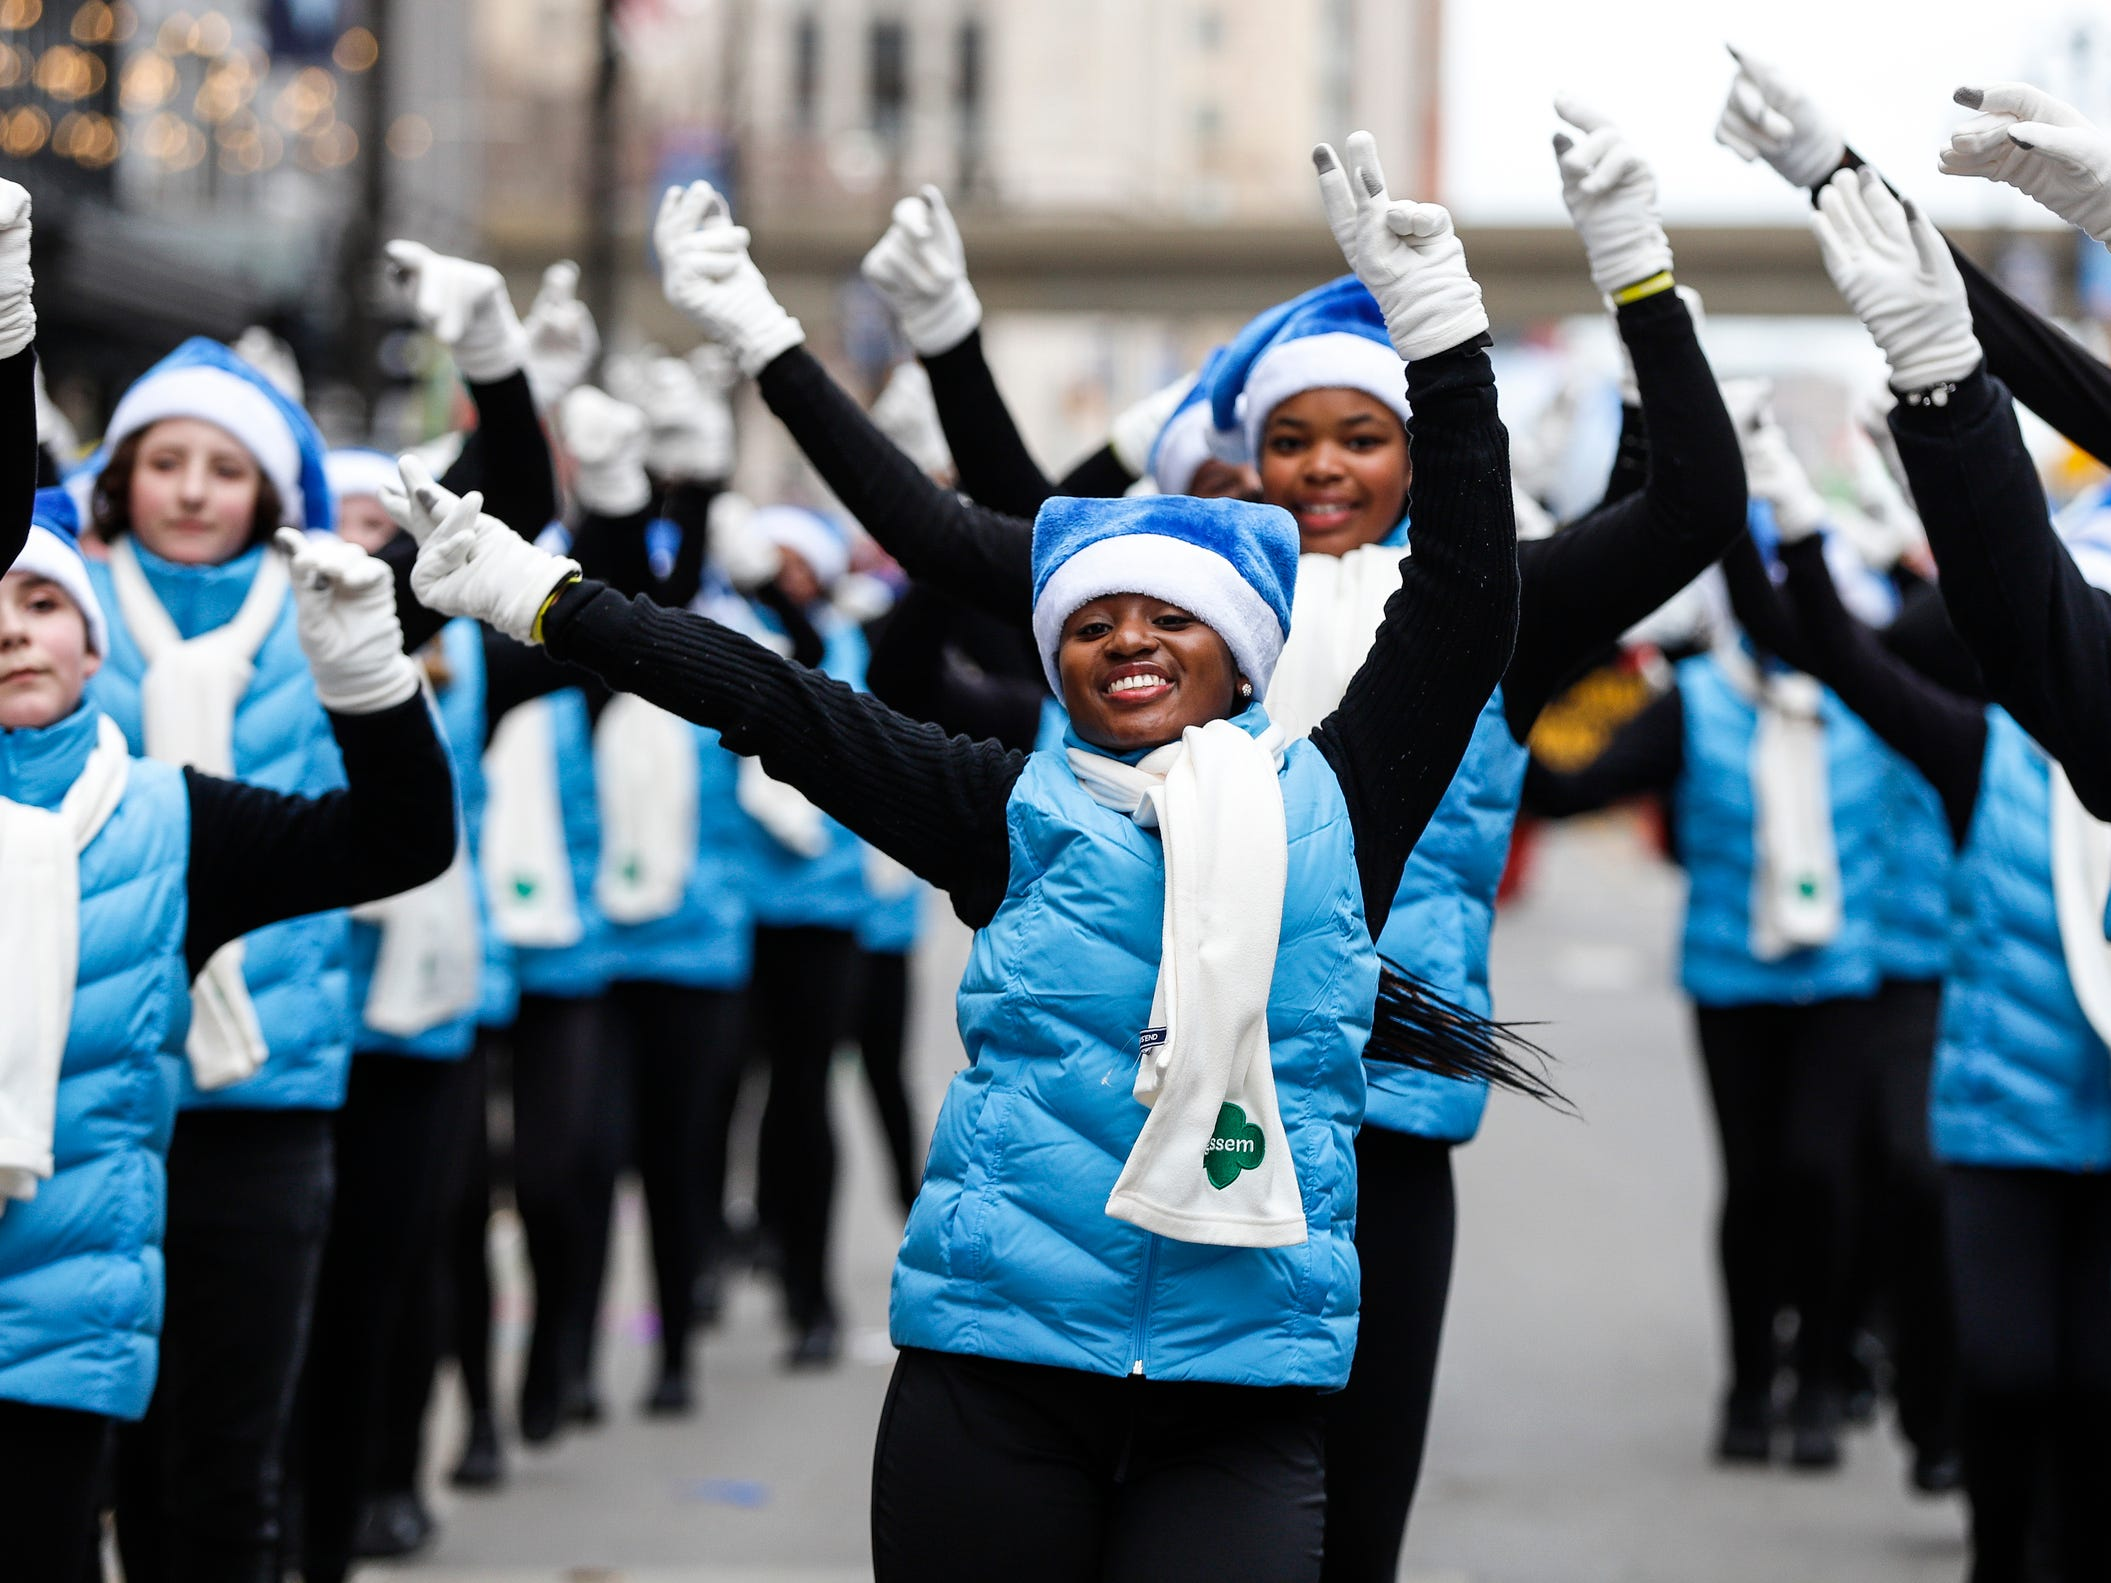 Parade participants from Southeastern Michigan Girl Scout make their way down Woodward Avenue during the 92nd America's Thanksgiving Day Parade in Detroit, Thursday, Nov. 22, 2018.